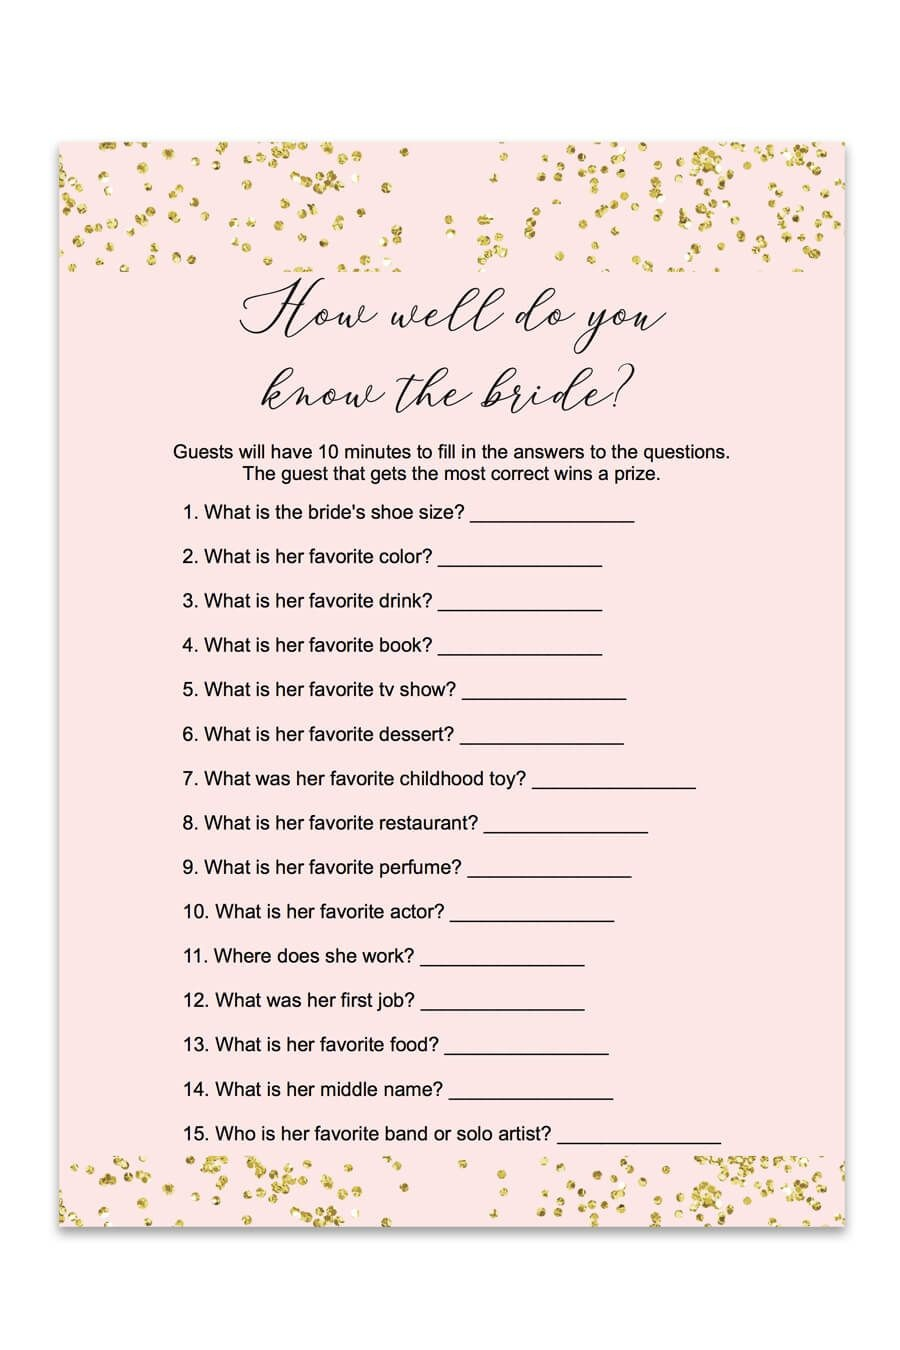 Blush And Confetti How Well Do You Know The Bride Game | Love<3 - Free Printable Bridal Shower Cards